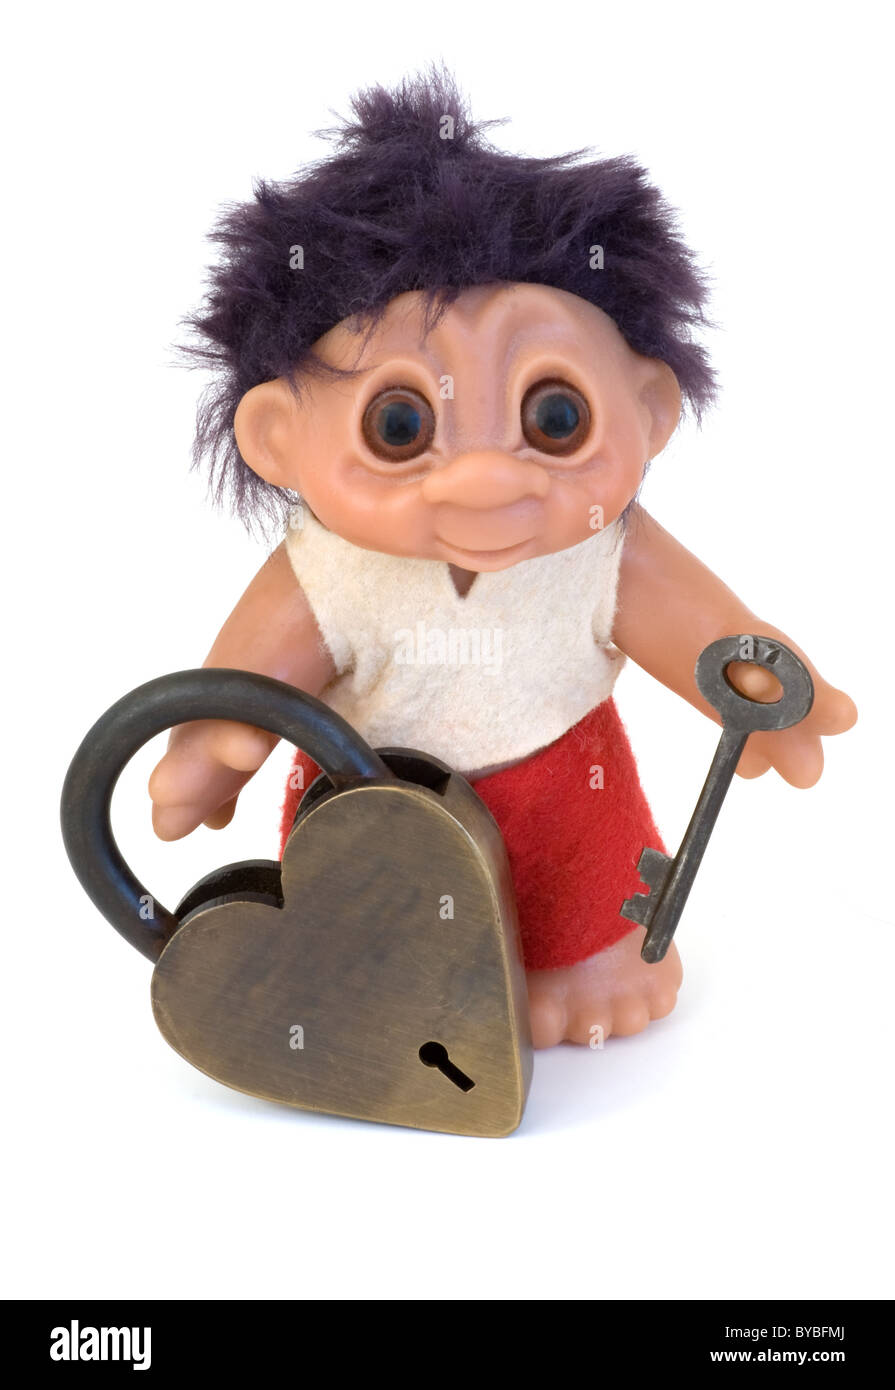 Troll boy in red and white holding a large heart lock and key - Stock Image